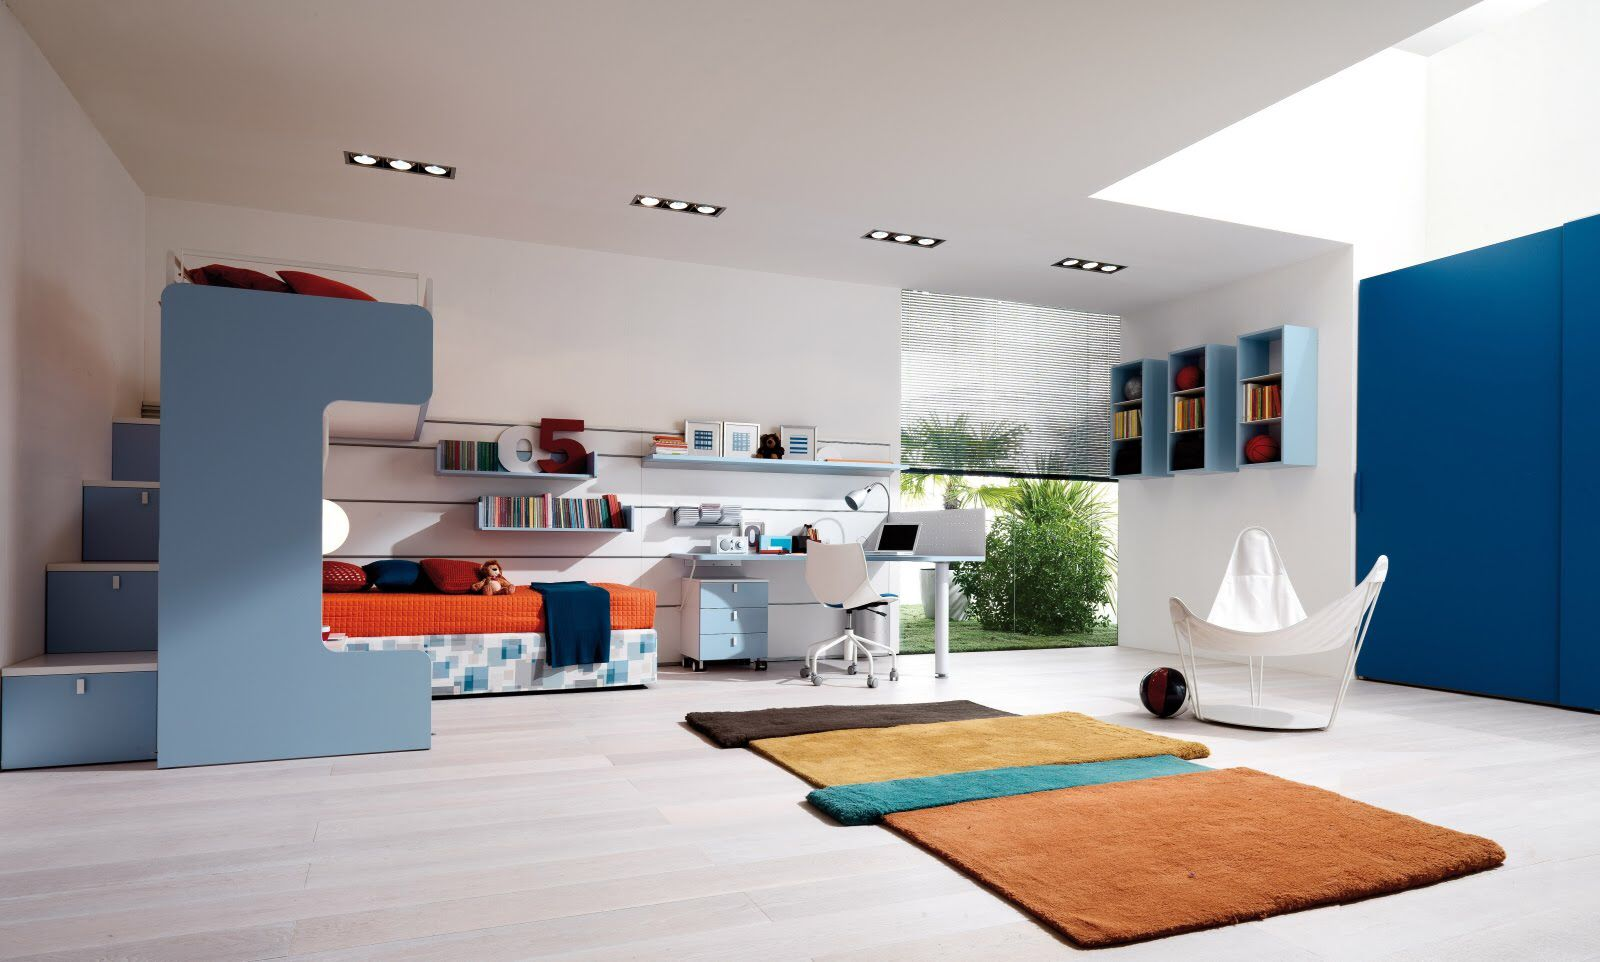 Project all white studio apartment perianth interior design new - Wonderful Blue And White Teen Room Design Ideas With Modern Wooden Bunk Bed Furniture Design Ideas Also Beautiful Ceiling Lighting Decorating Ideas And